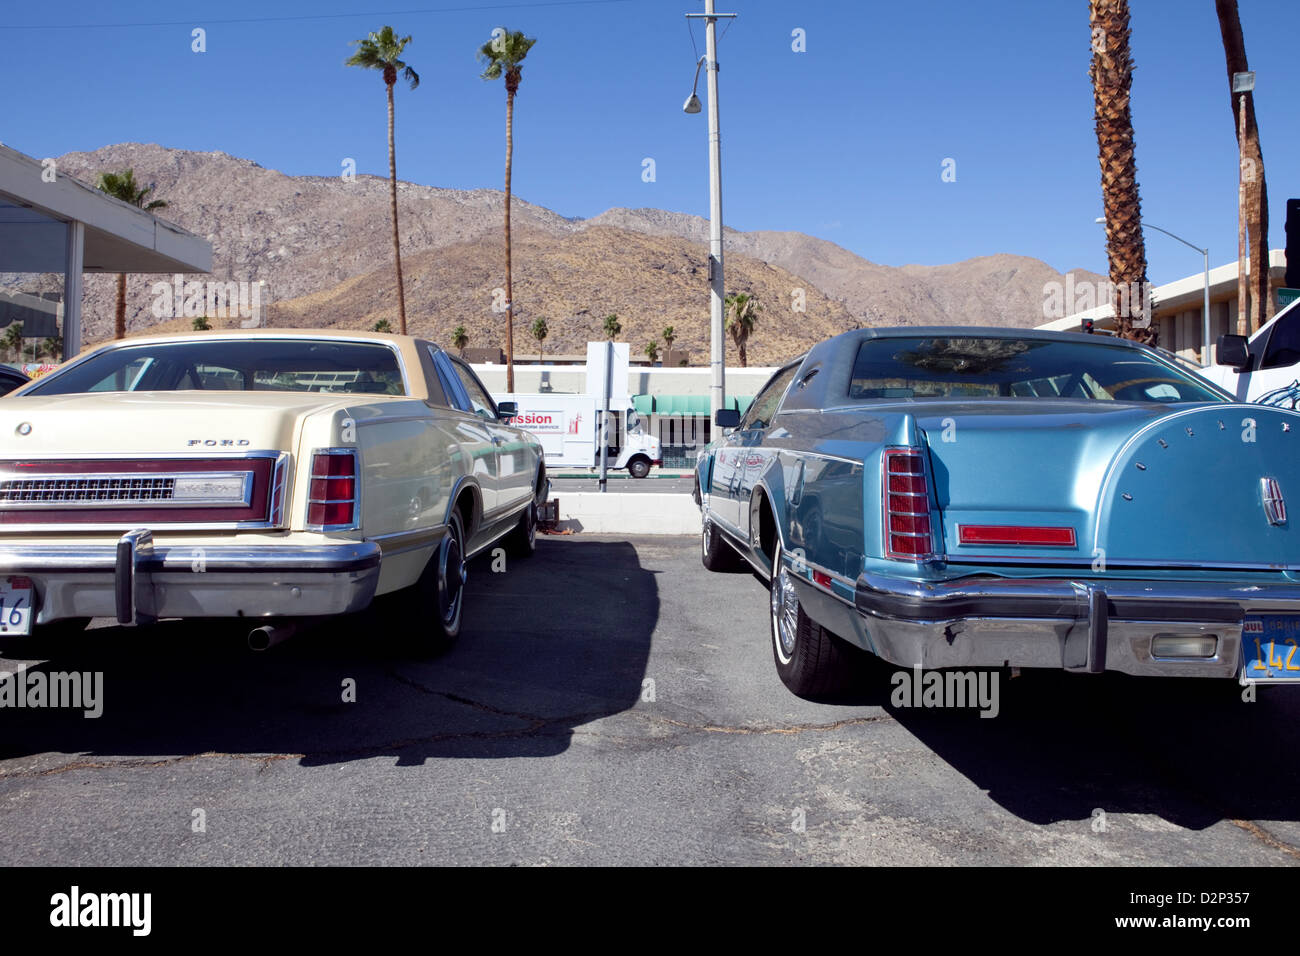 CLASSIC VINTAGE AMERICAN CARS IN A PARKING LOT IN PALM SPRINGS, CA ...